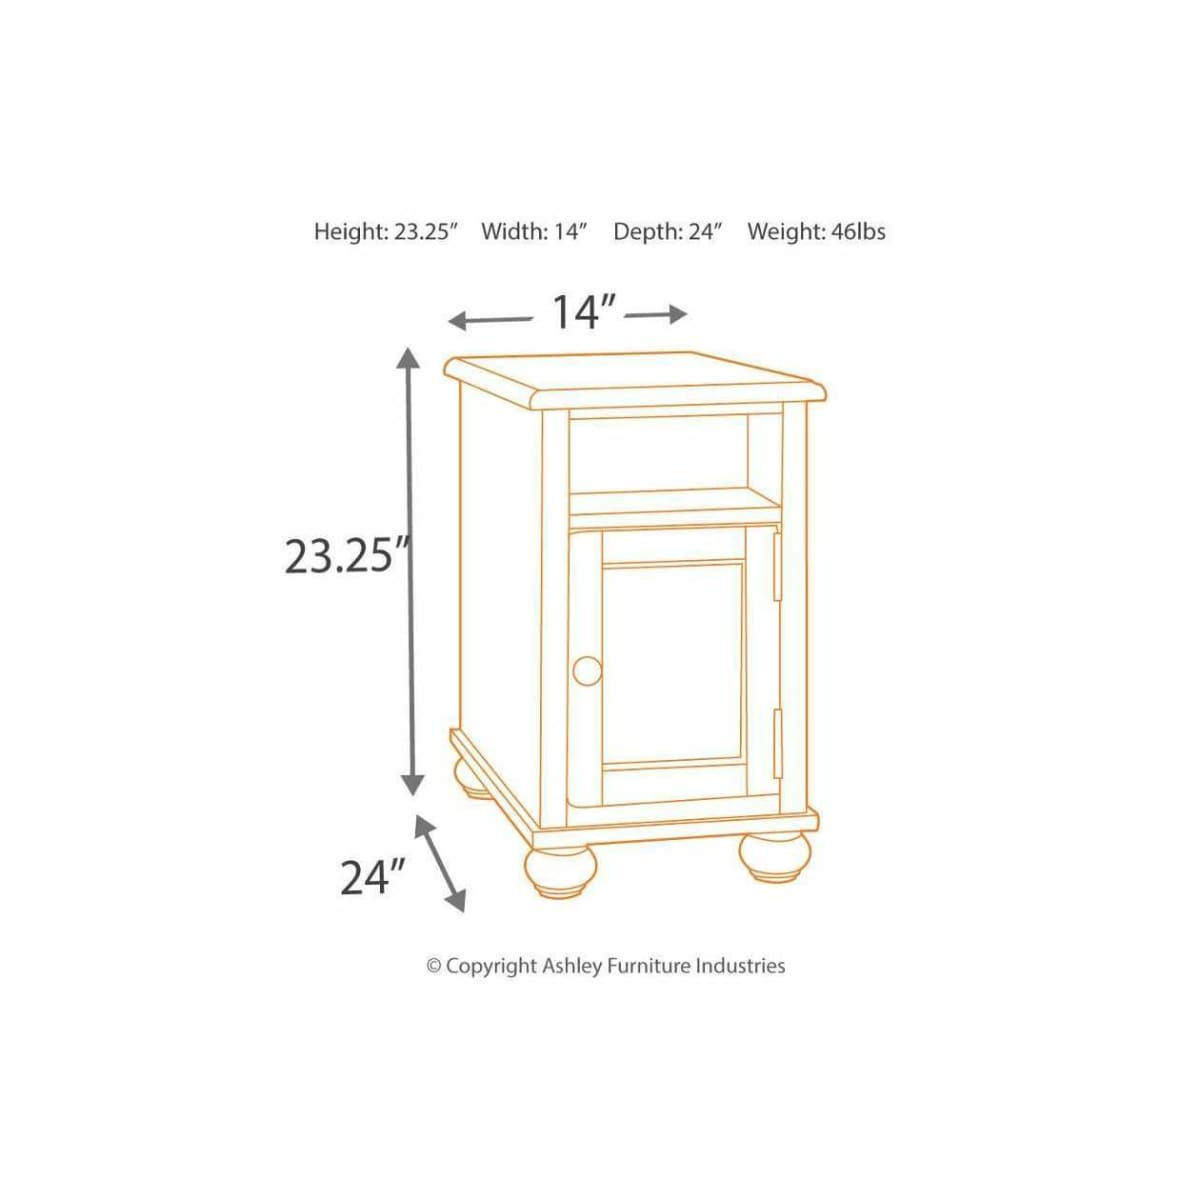 Barilanni Chairside End Table - END TABLE/SIDE TABLE